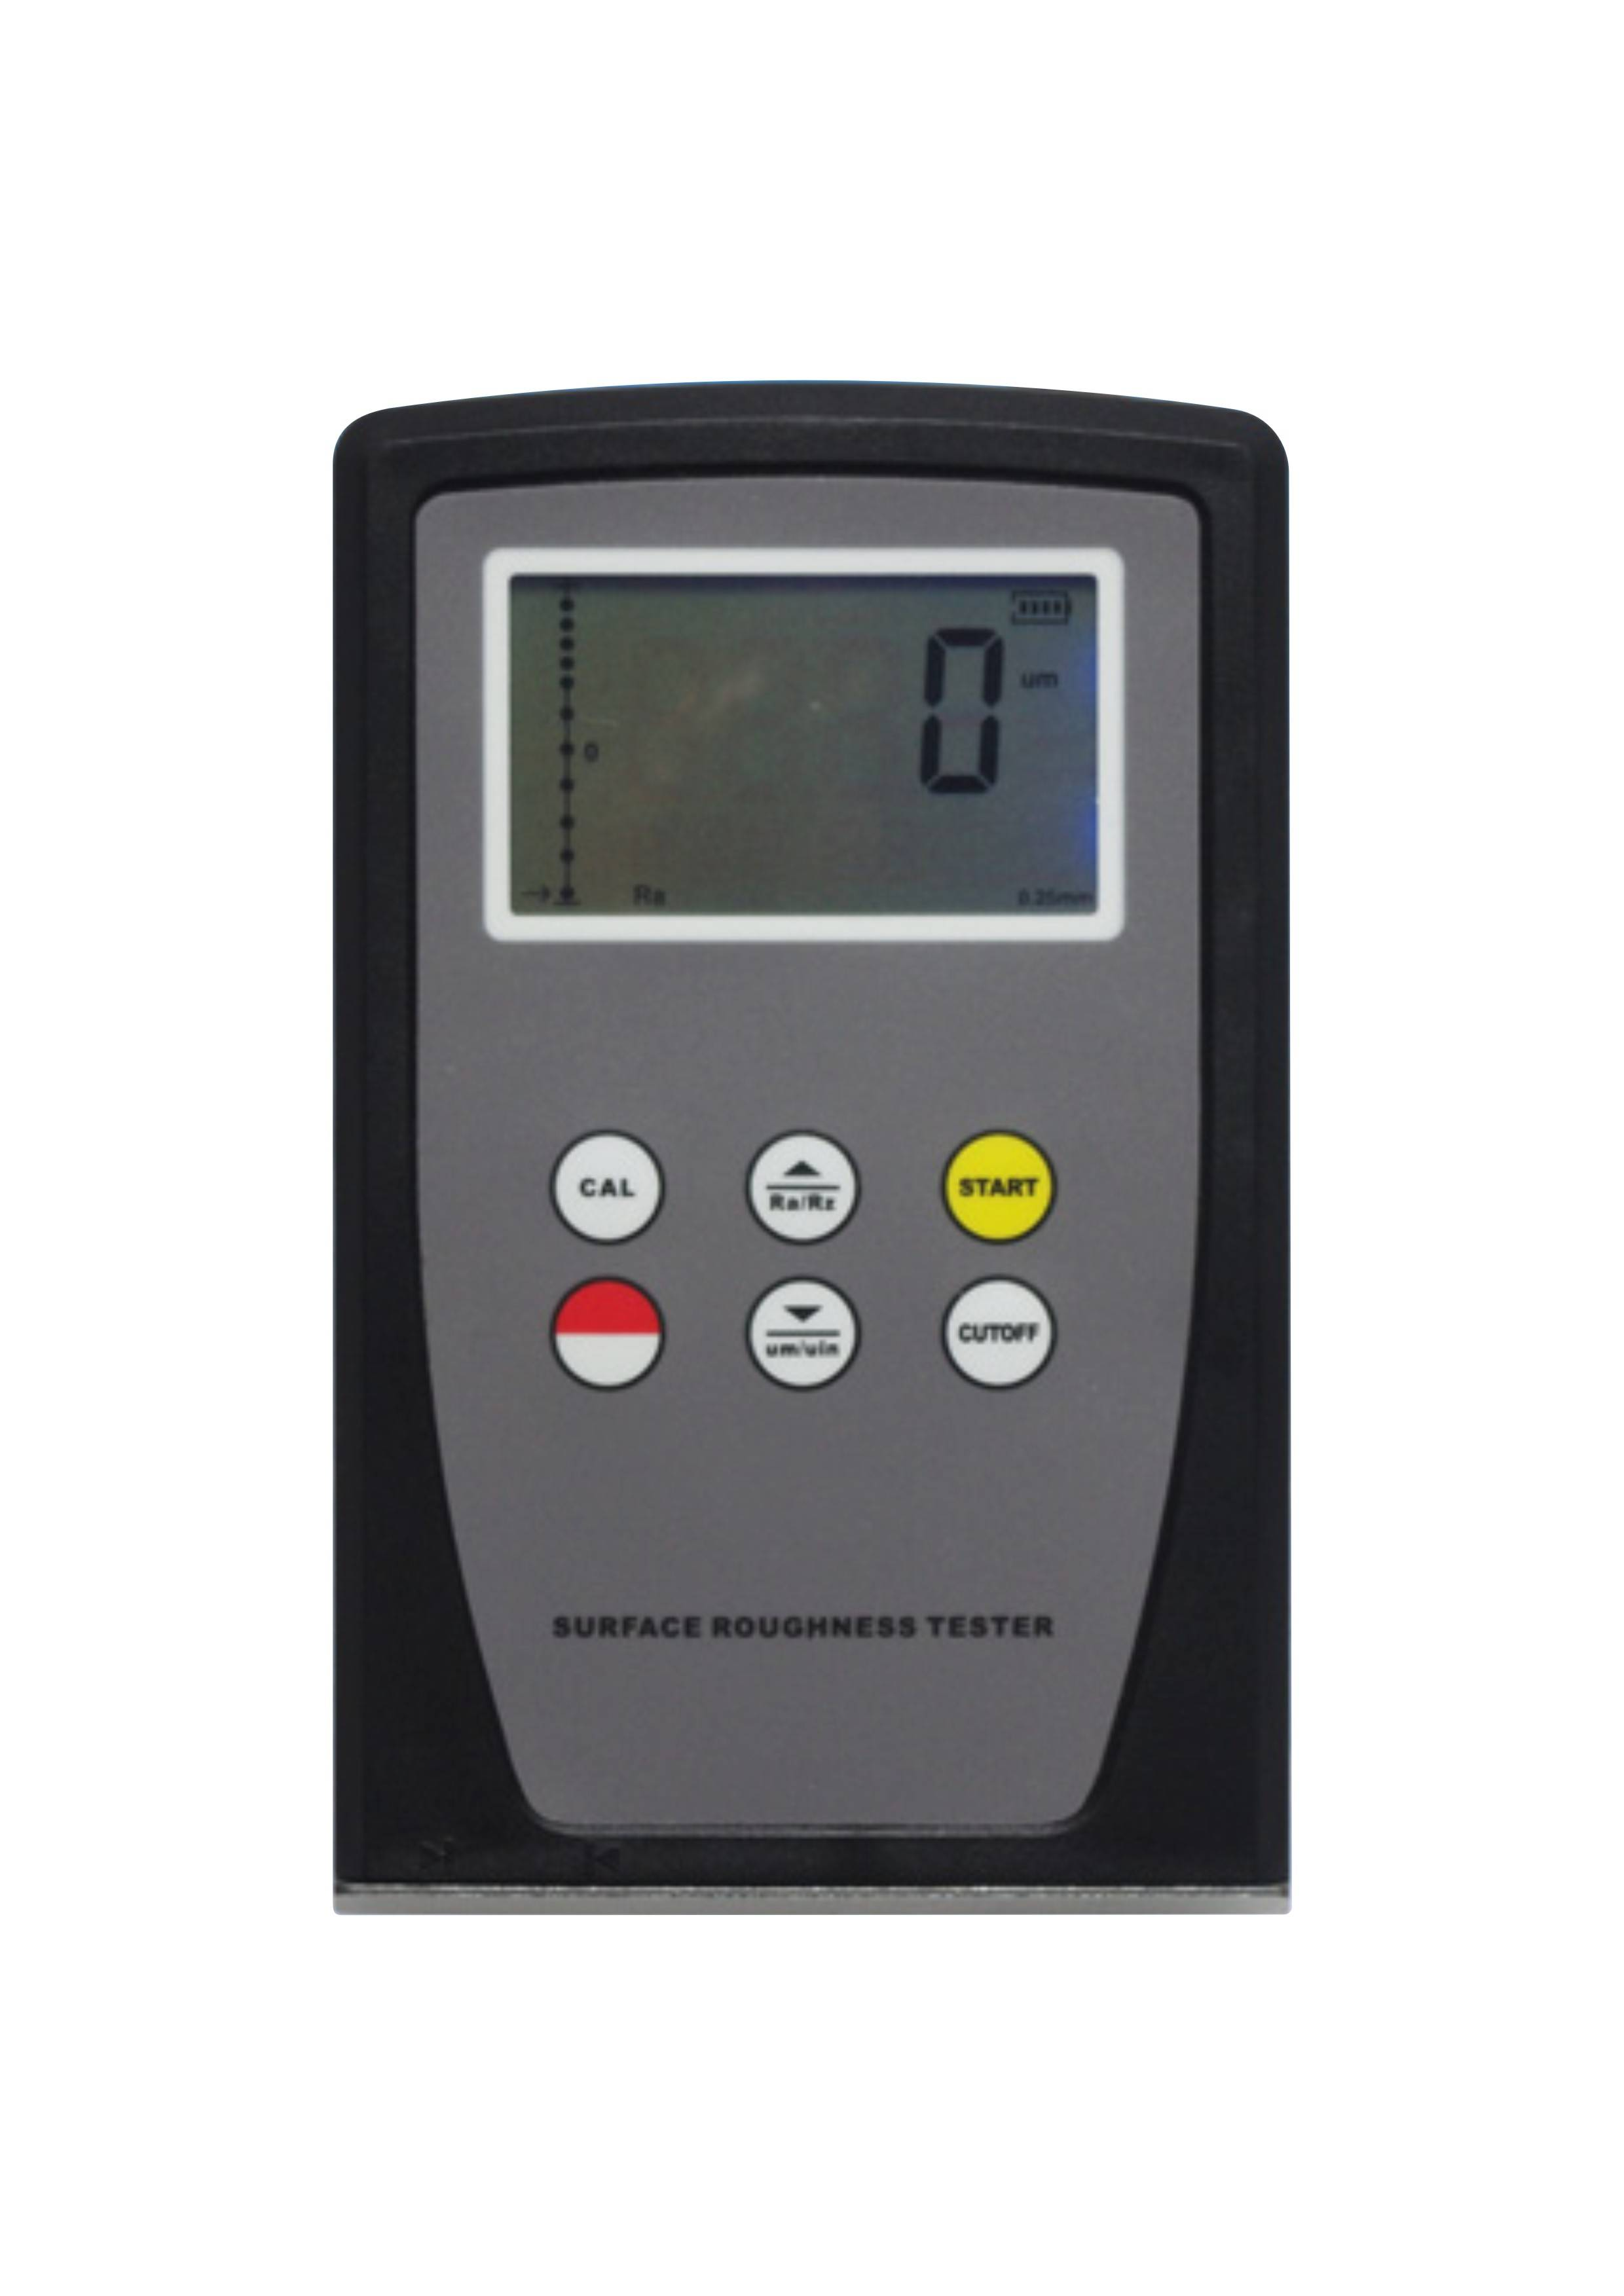 Surface Roughness Tester SRT-6100